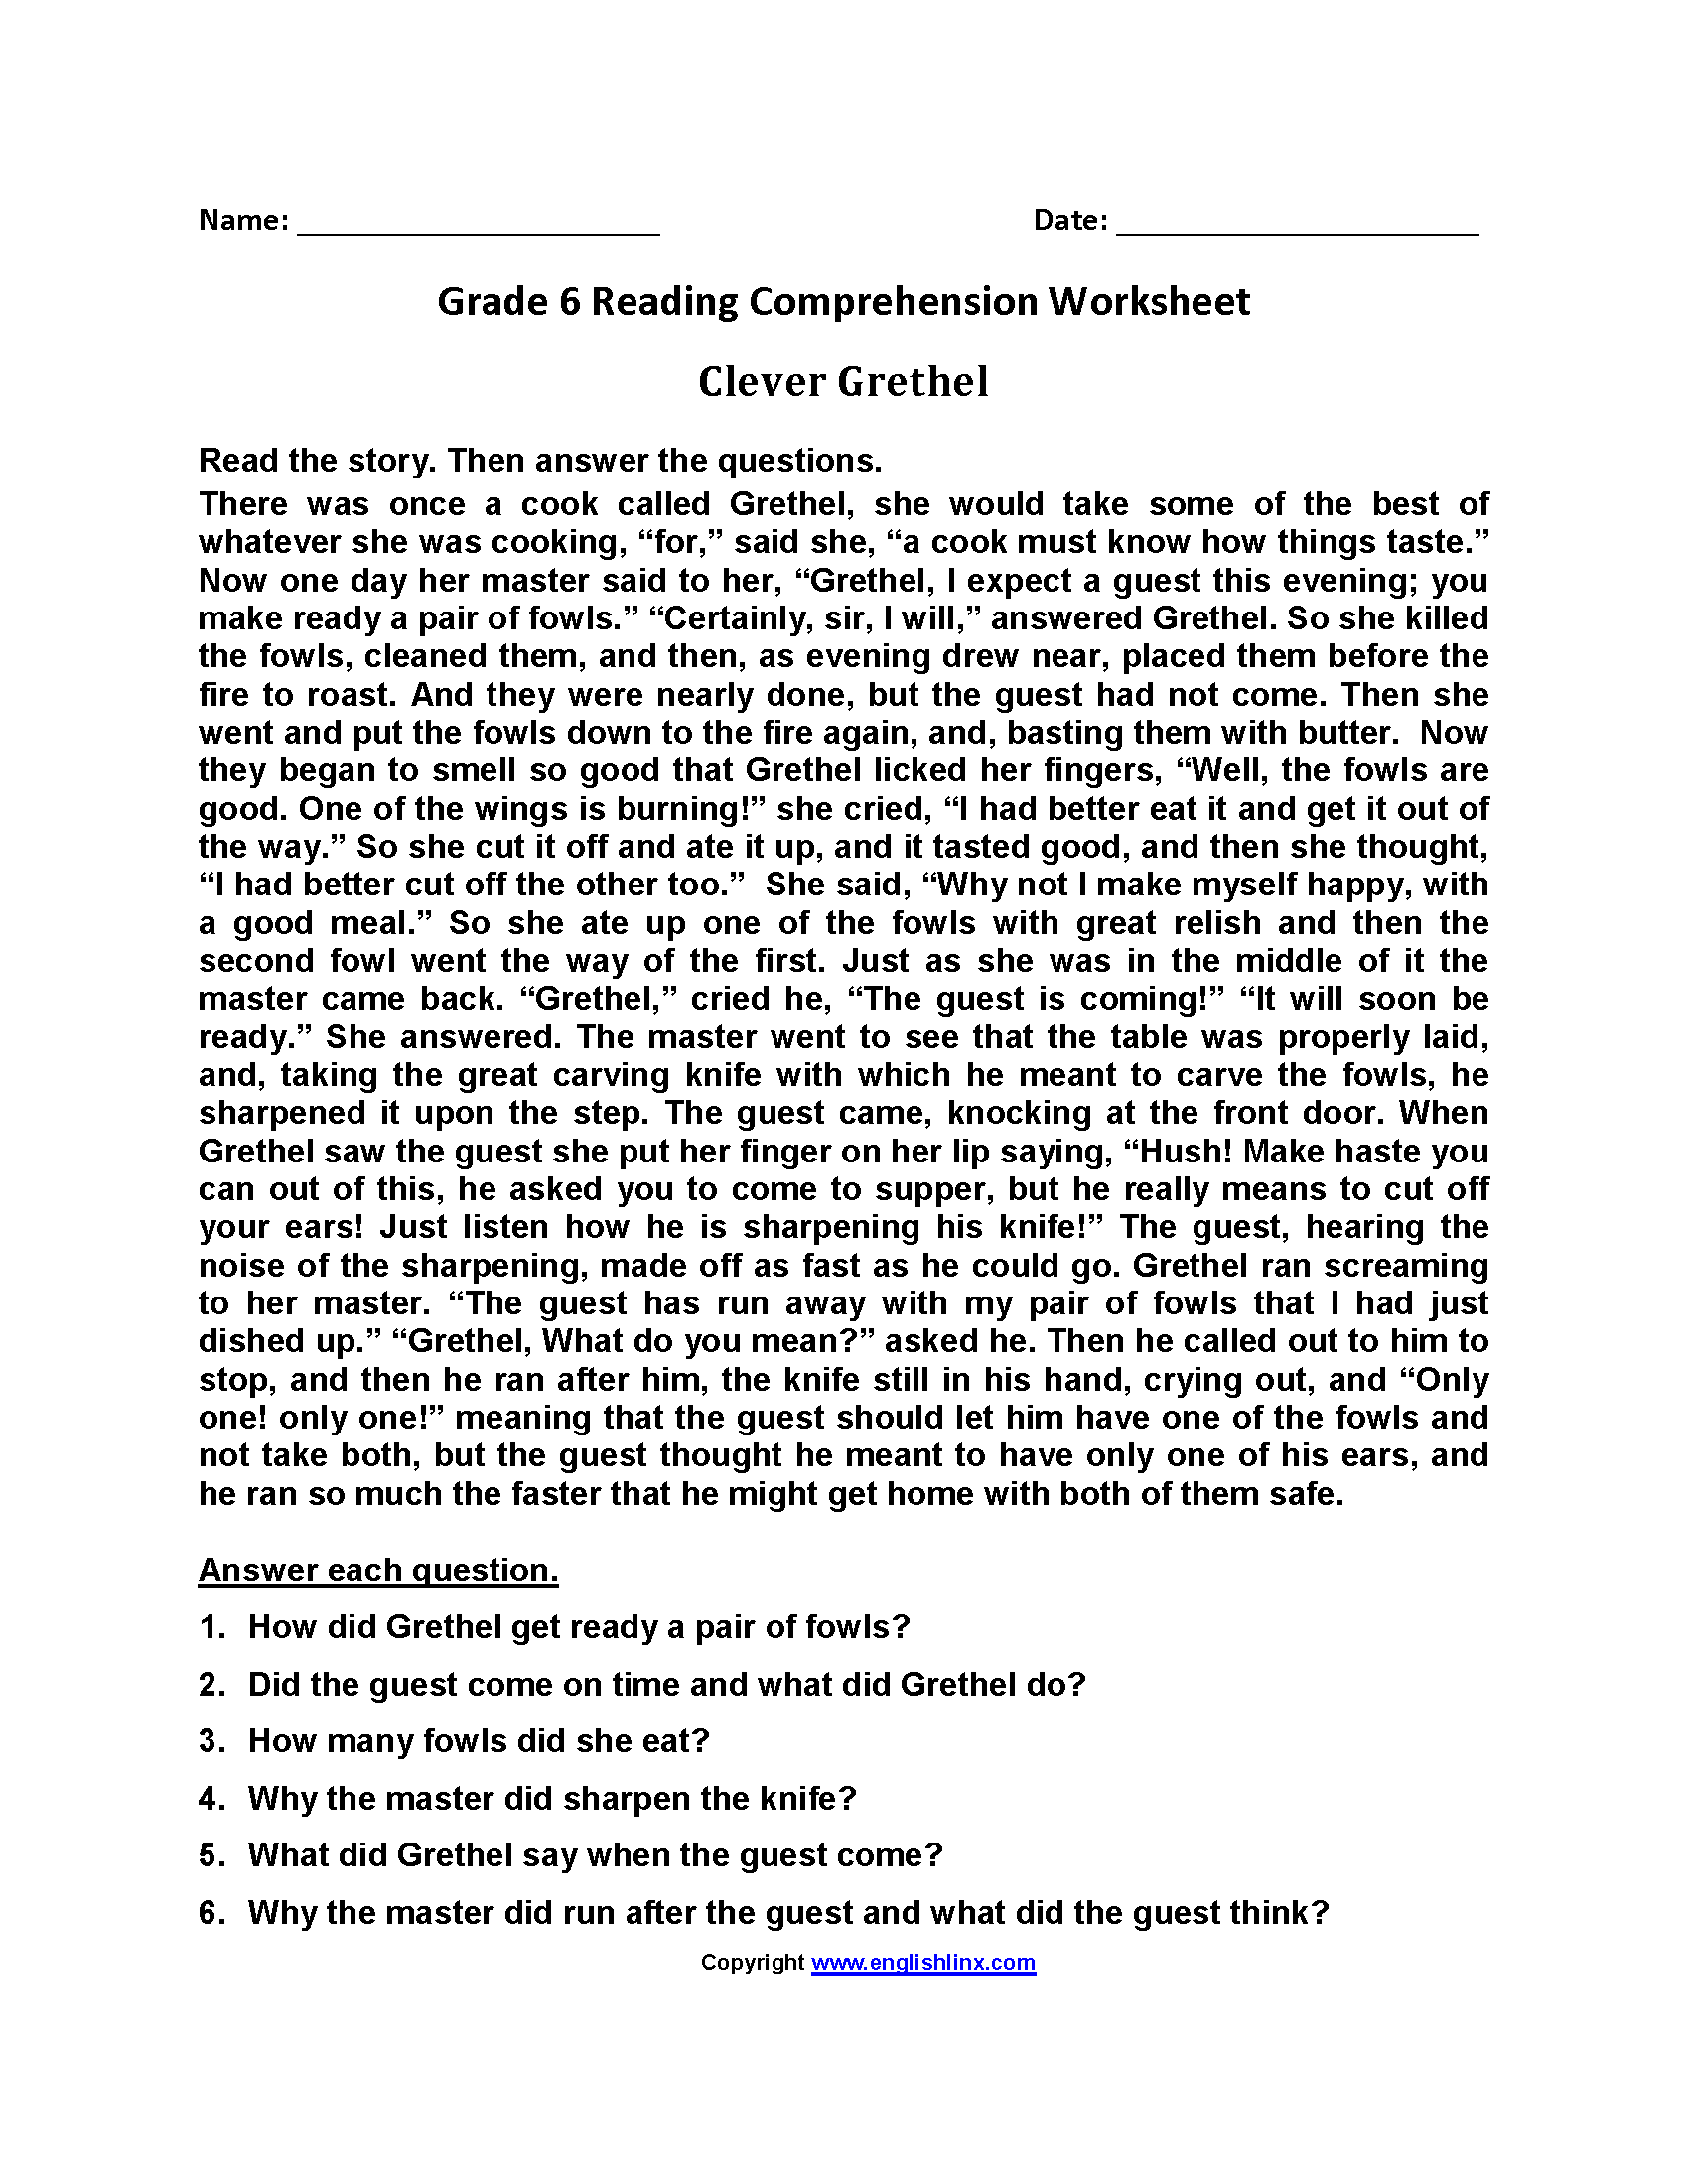 Worksheets Sixth Grade Reading Worksheets worksheet reading worksheets for 6th grade grass fedjp sixth worksheets